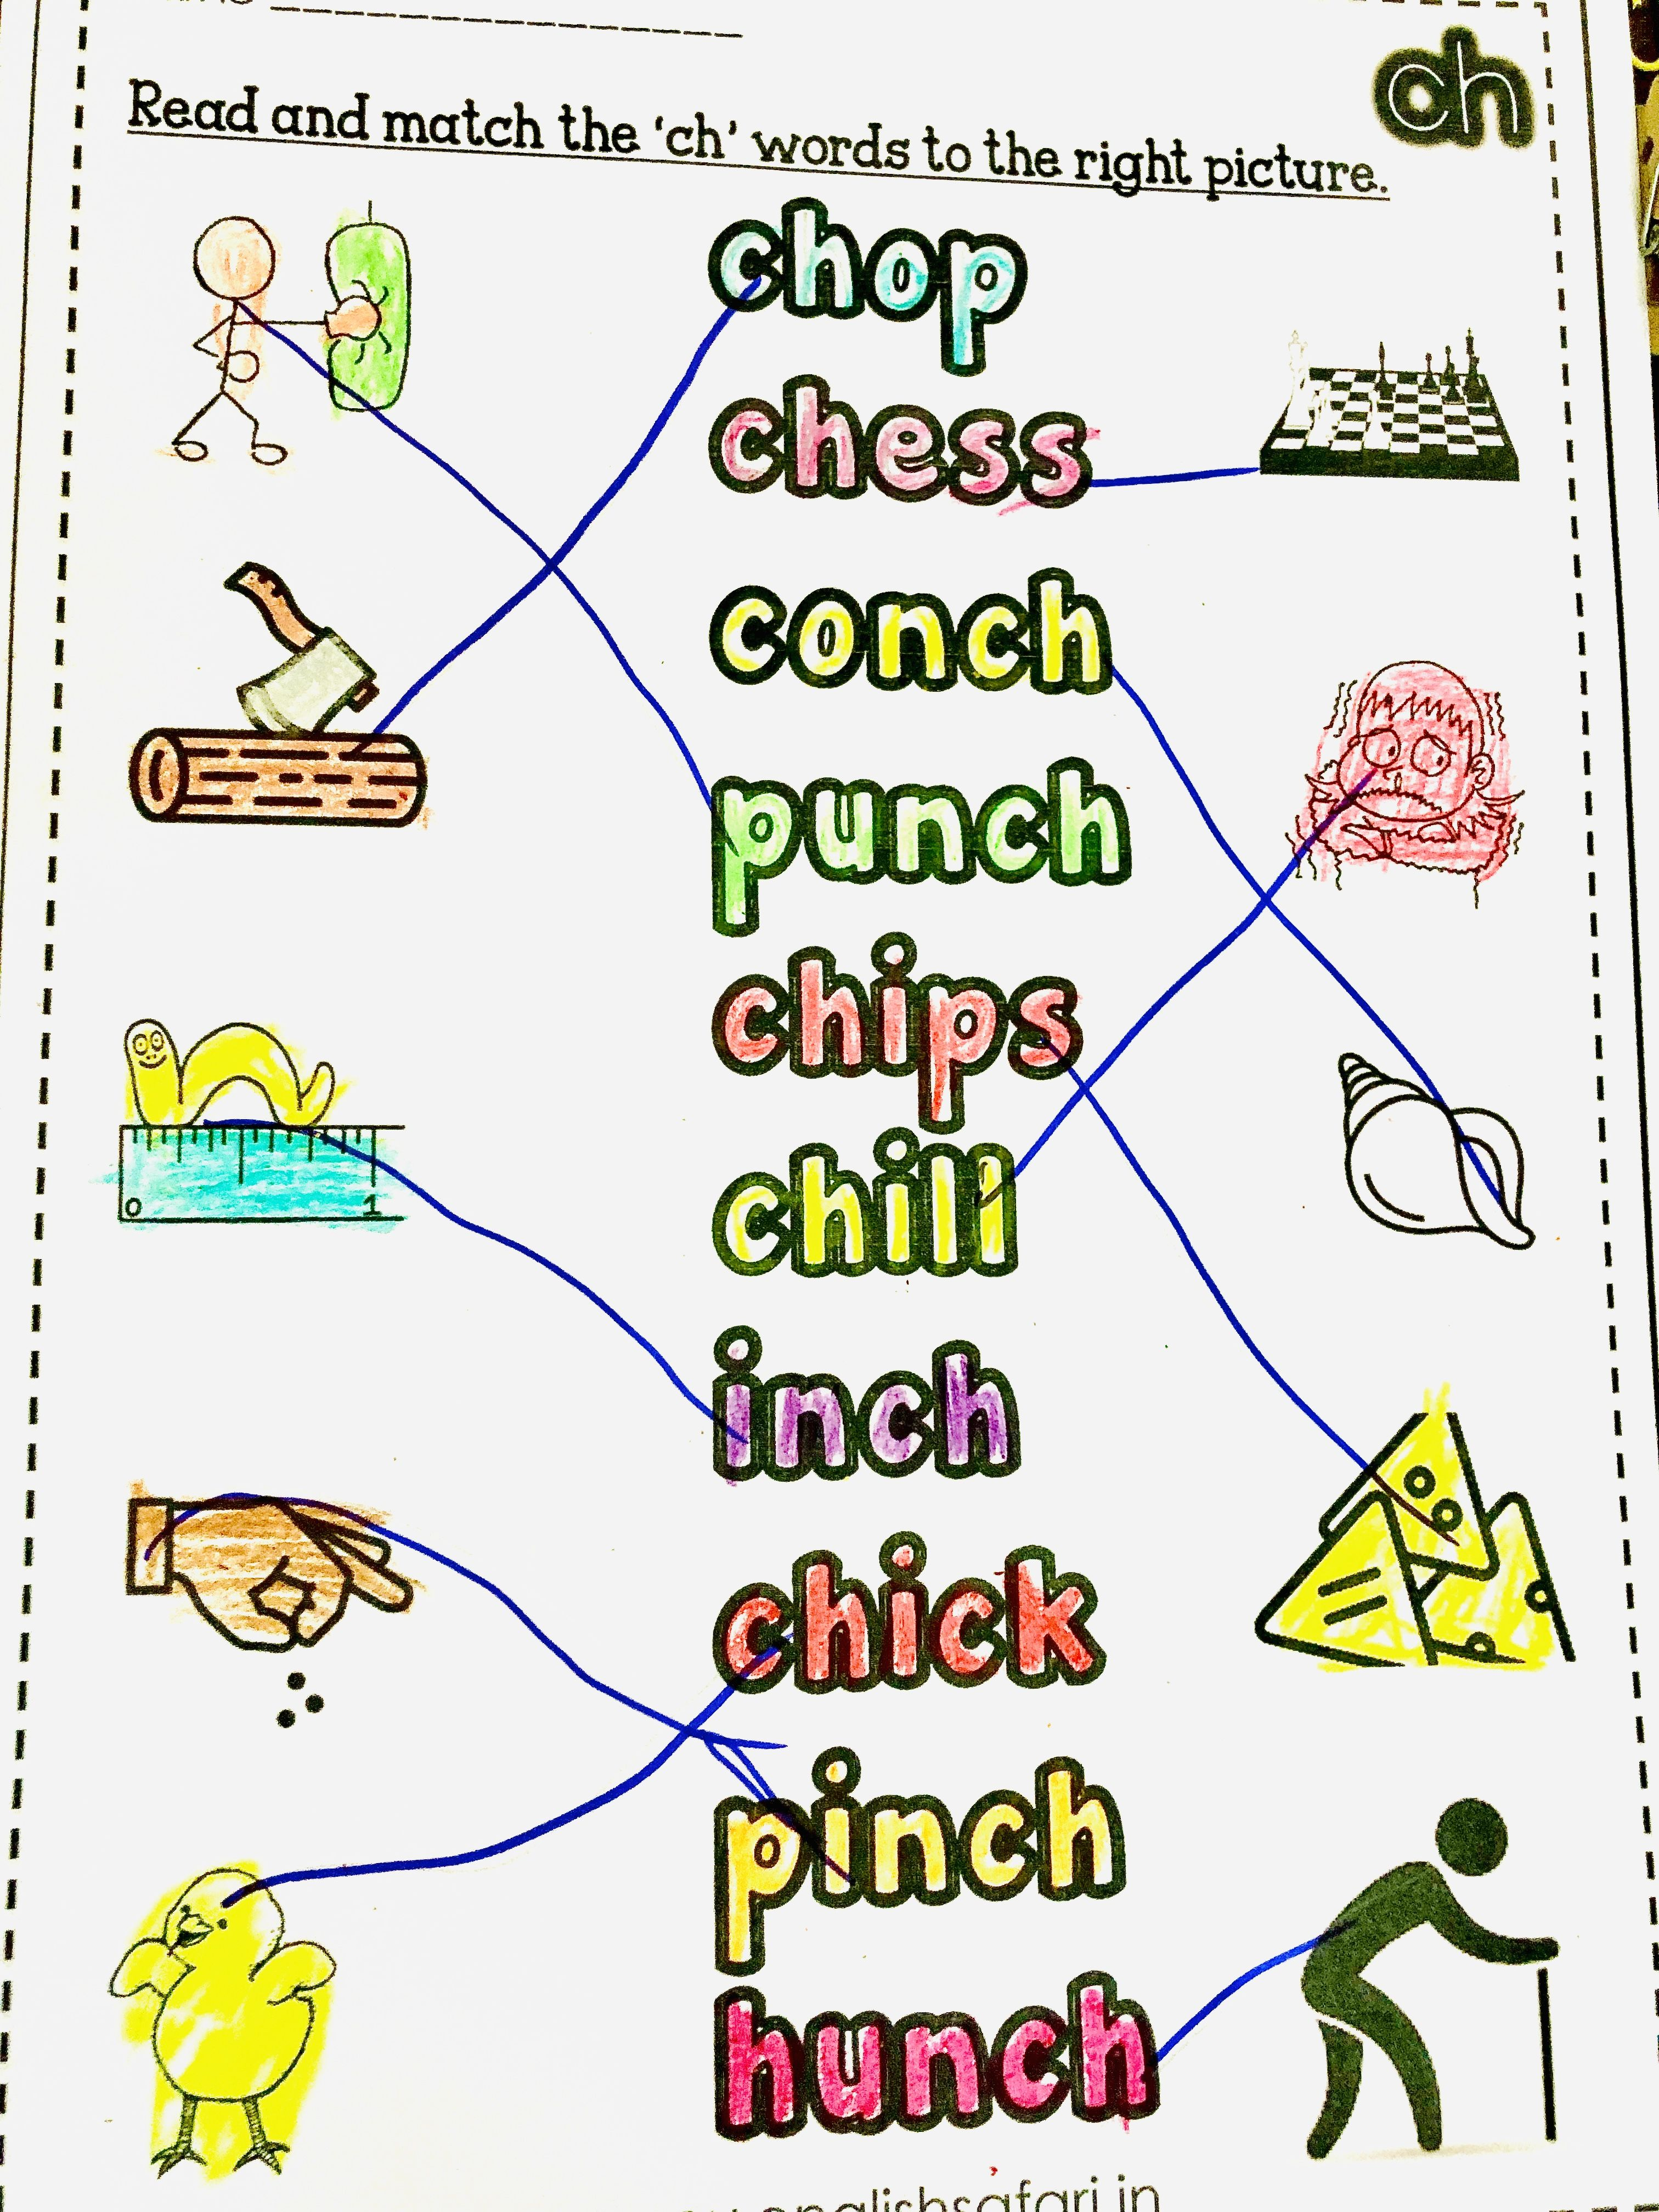 Read The Digraph Ch Words And Then Match It With The